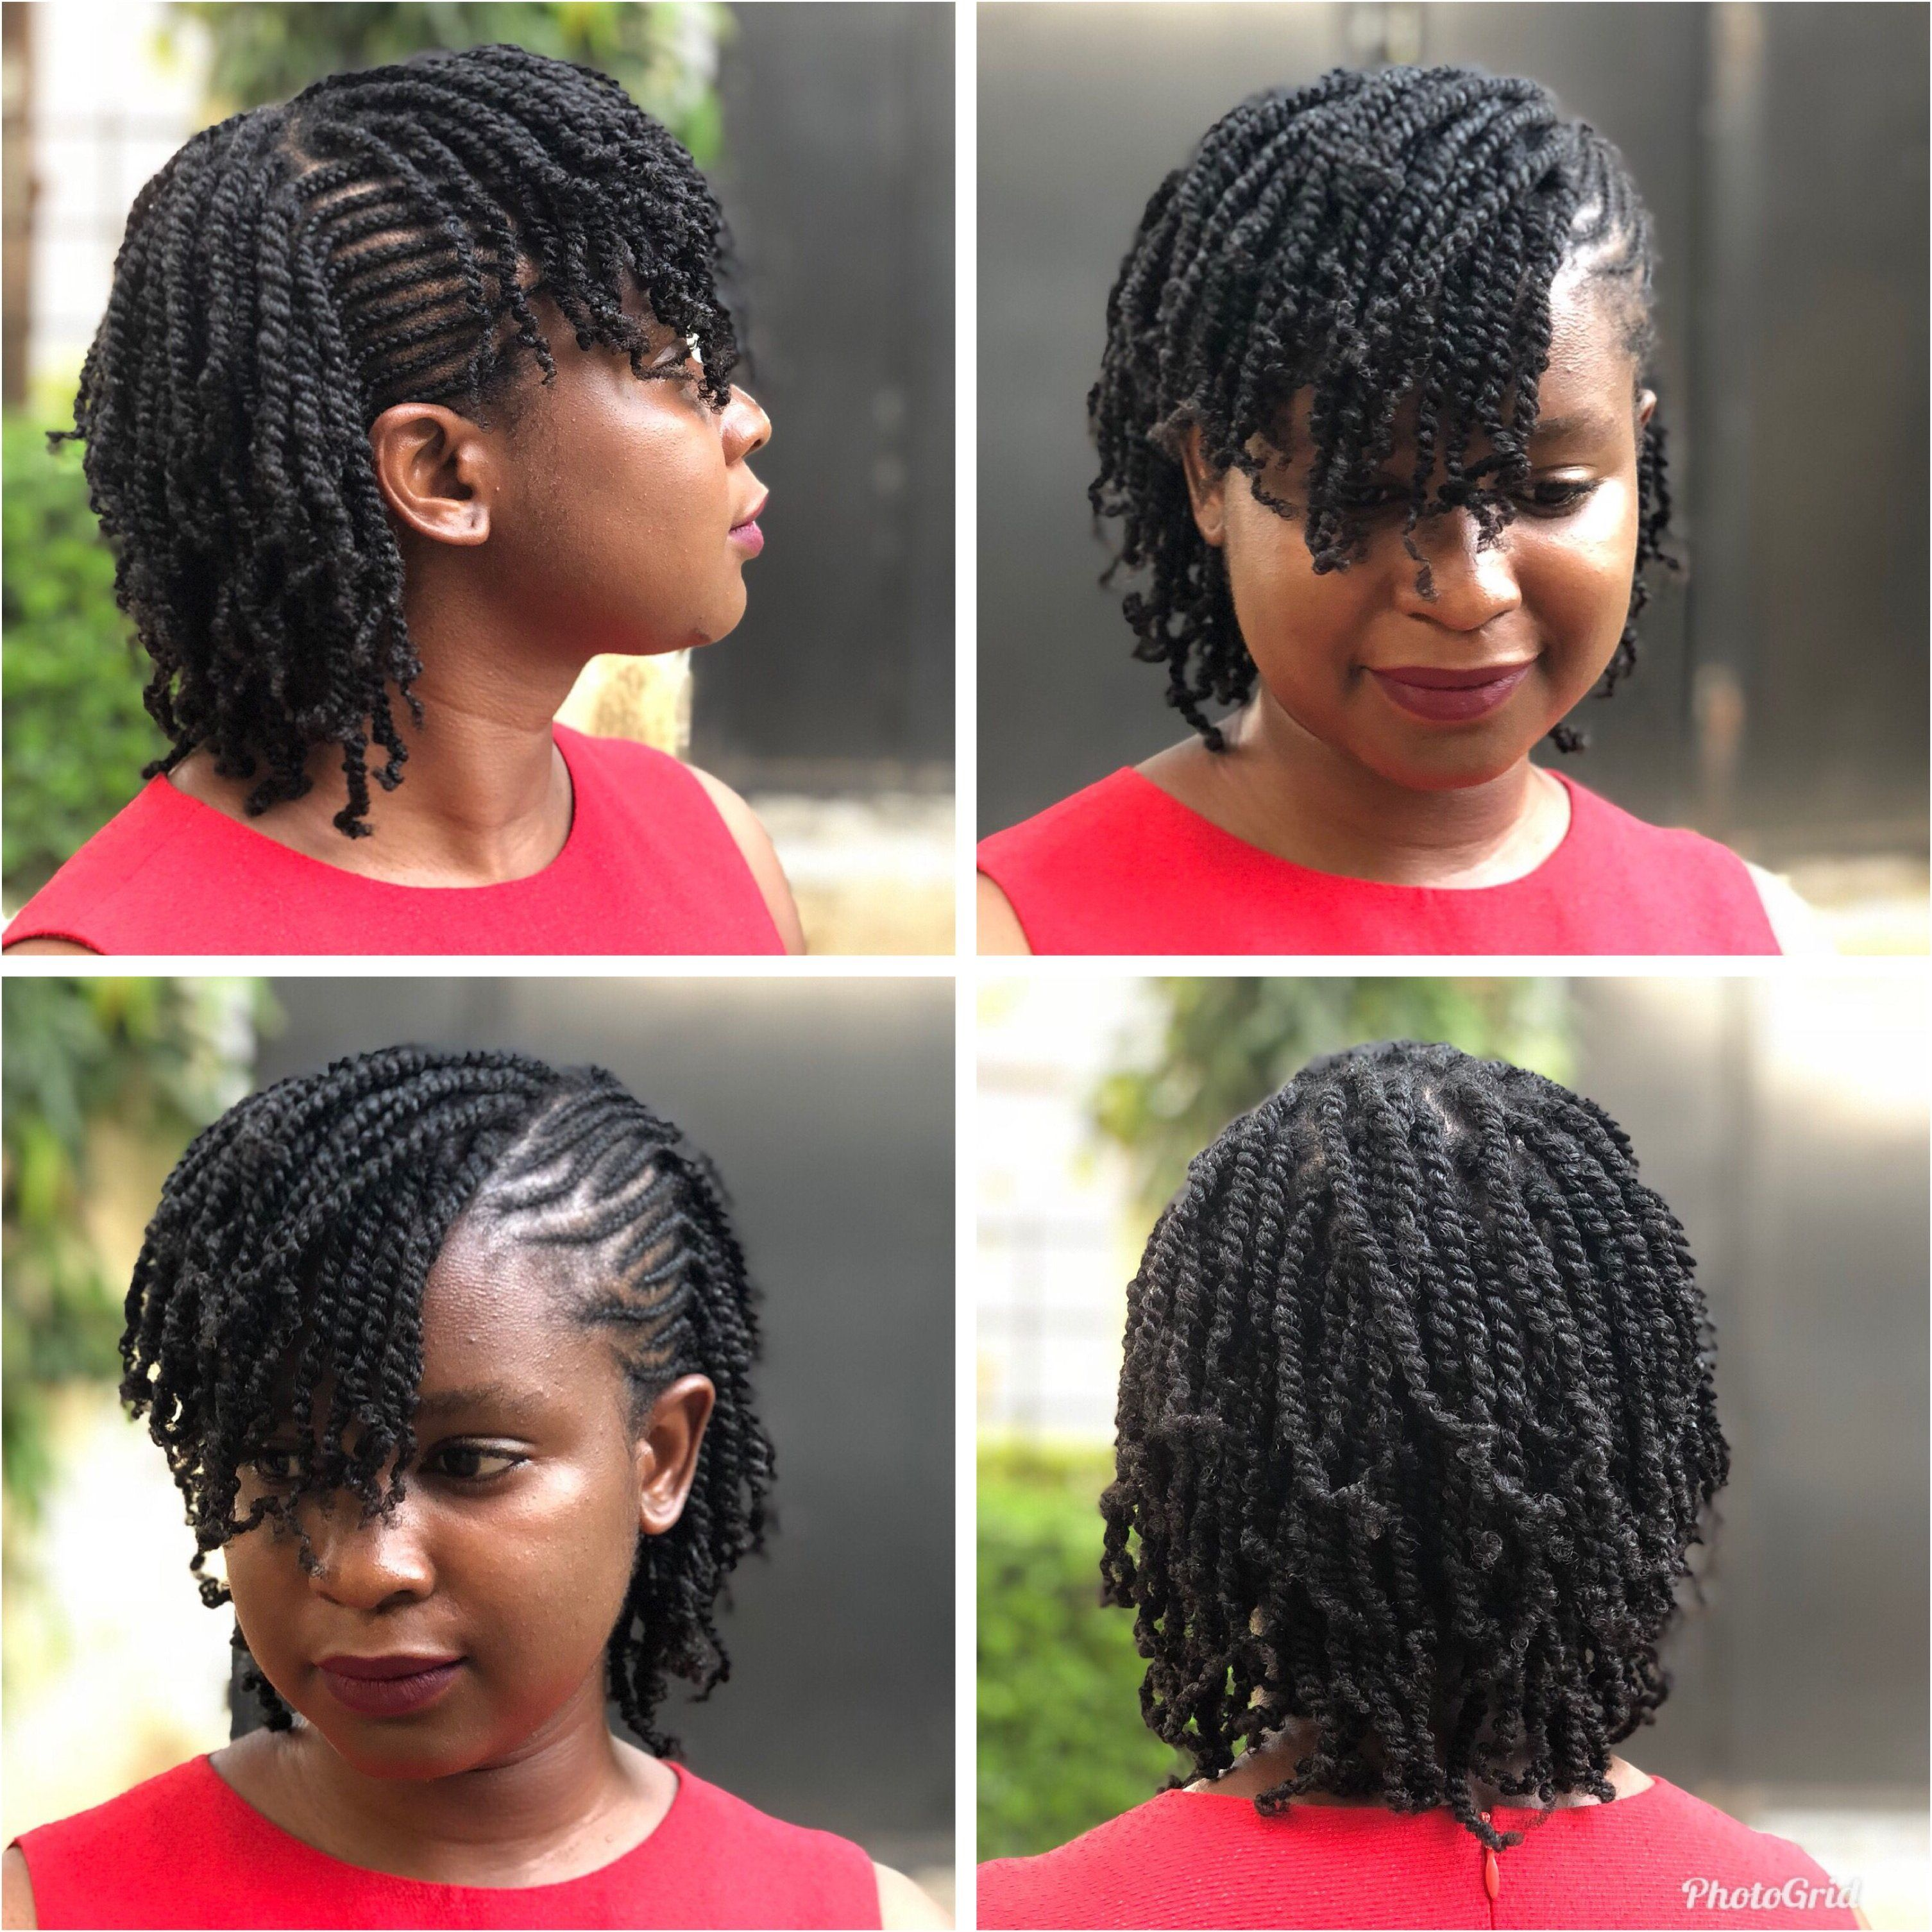 Natural Mini Twist Cheveux Vaiana Flat Twist Styles On Natural Hair In 2020 Natural Hair Braids Natural Hair Twists Flat Twist Hairstyles